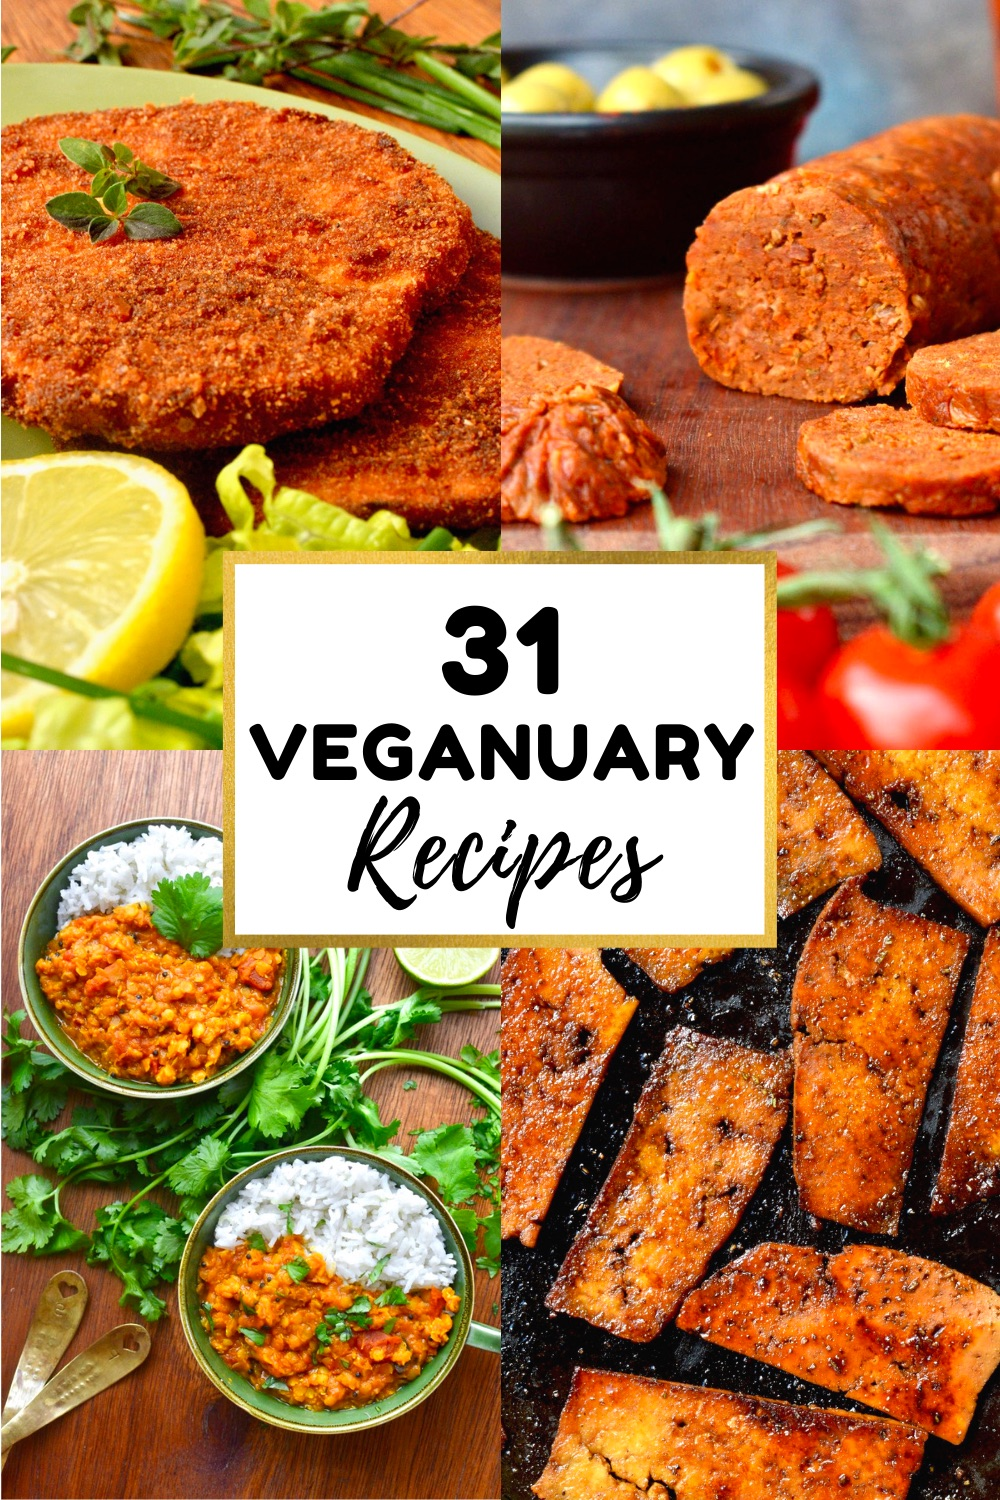 A collage of tasty looking vegan dishes, text reads 31 Veganuary Recipes.